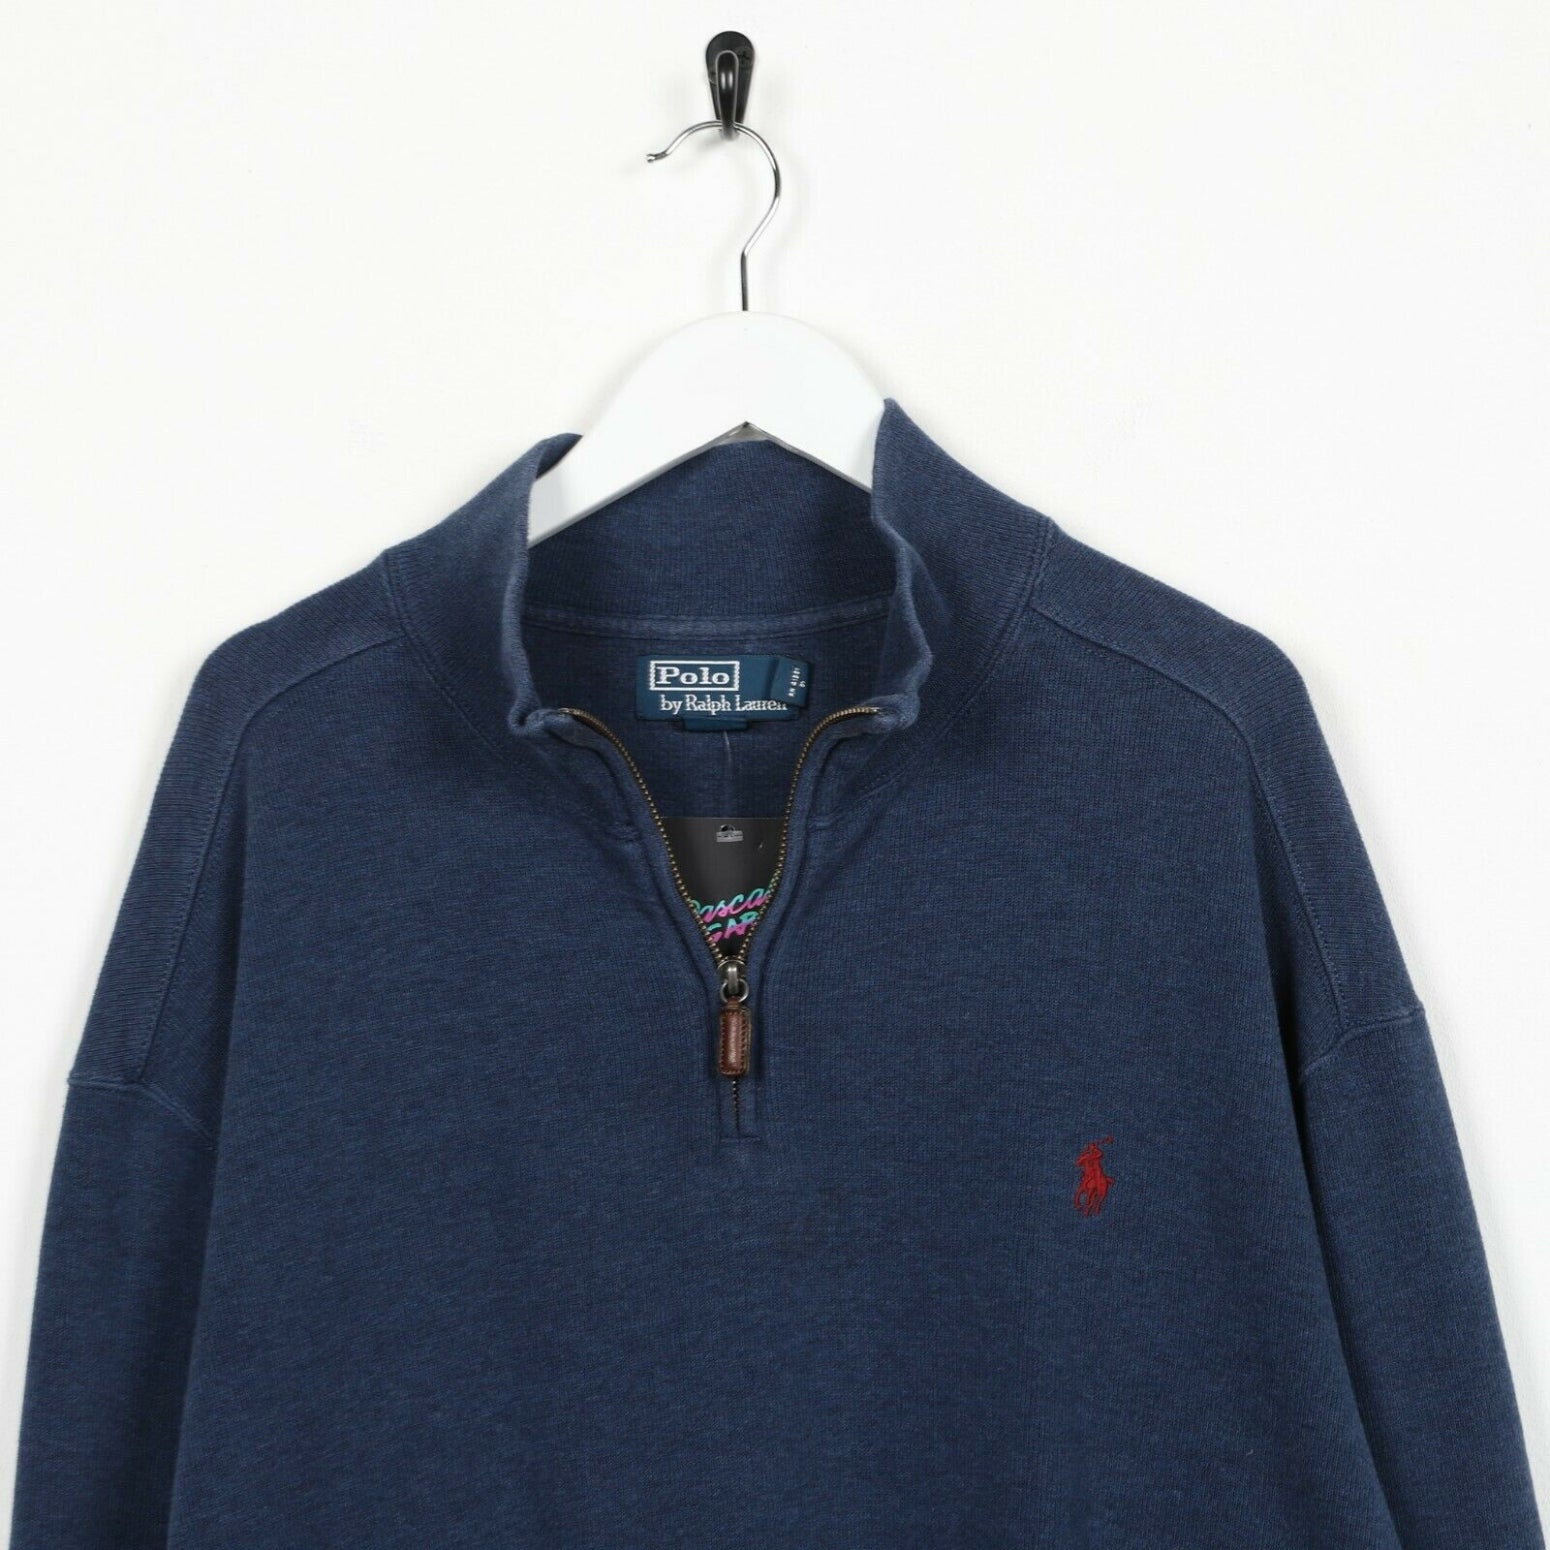 Vintage RALPH LAUREN Small Logo 1/4 Zip Sweatshirt Jumper Blue | 2XL